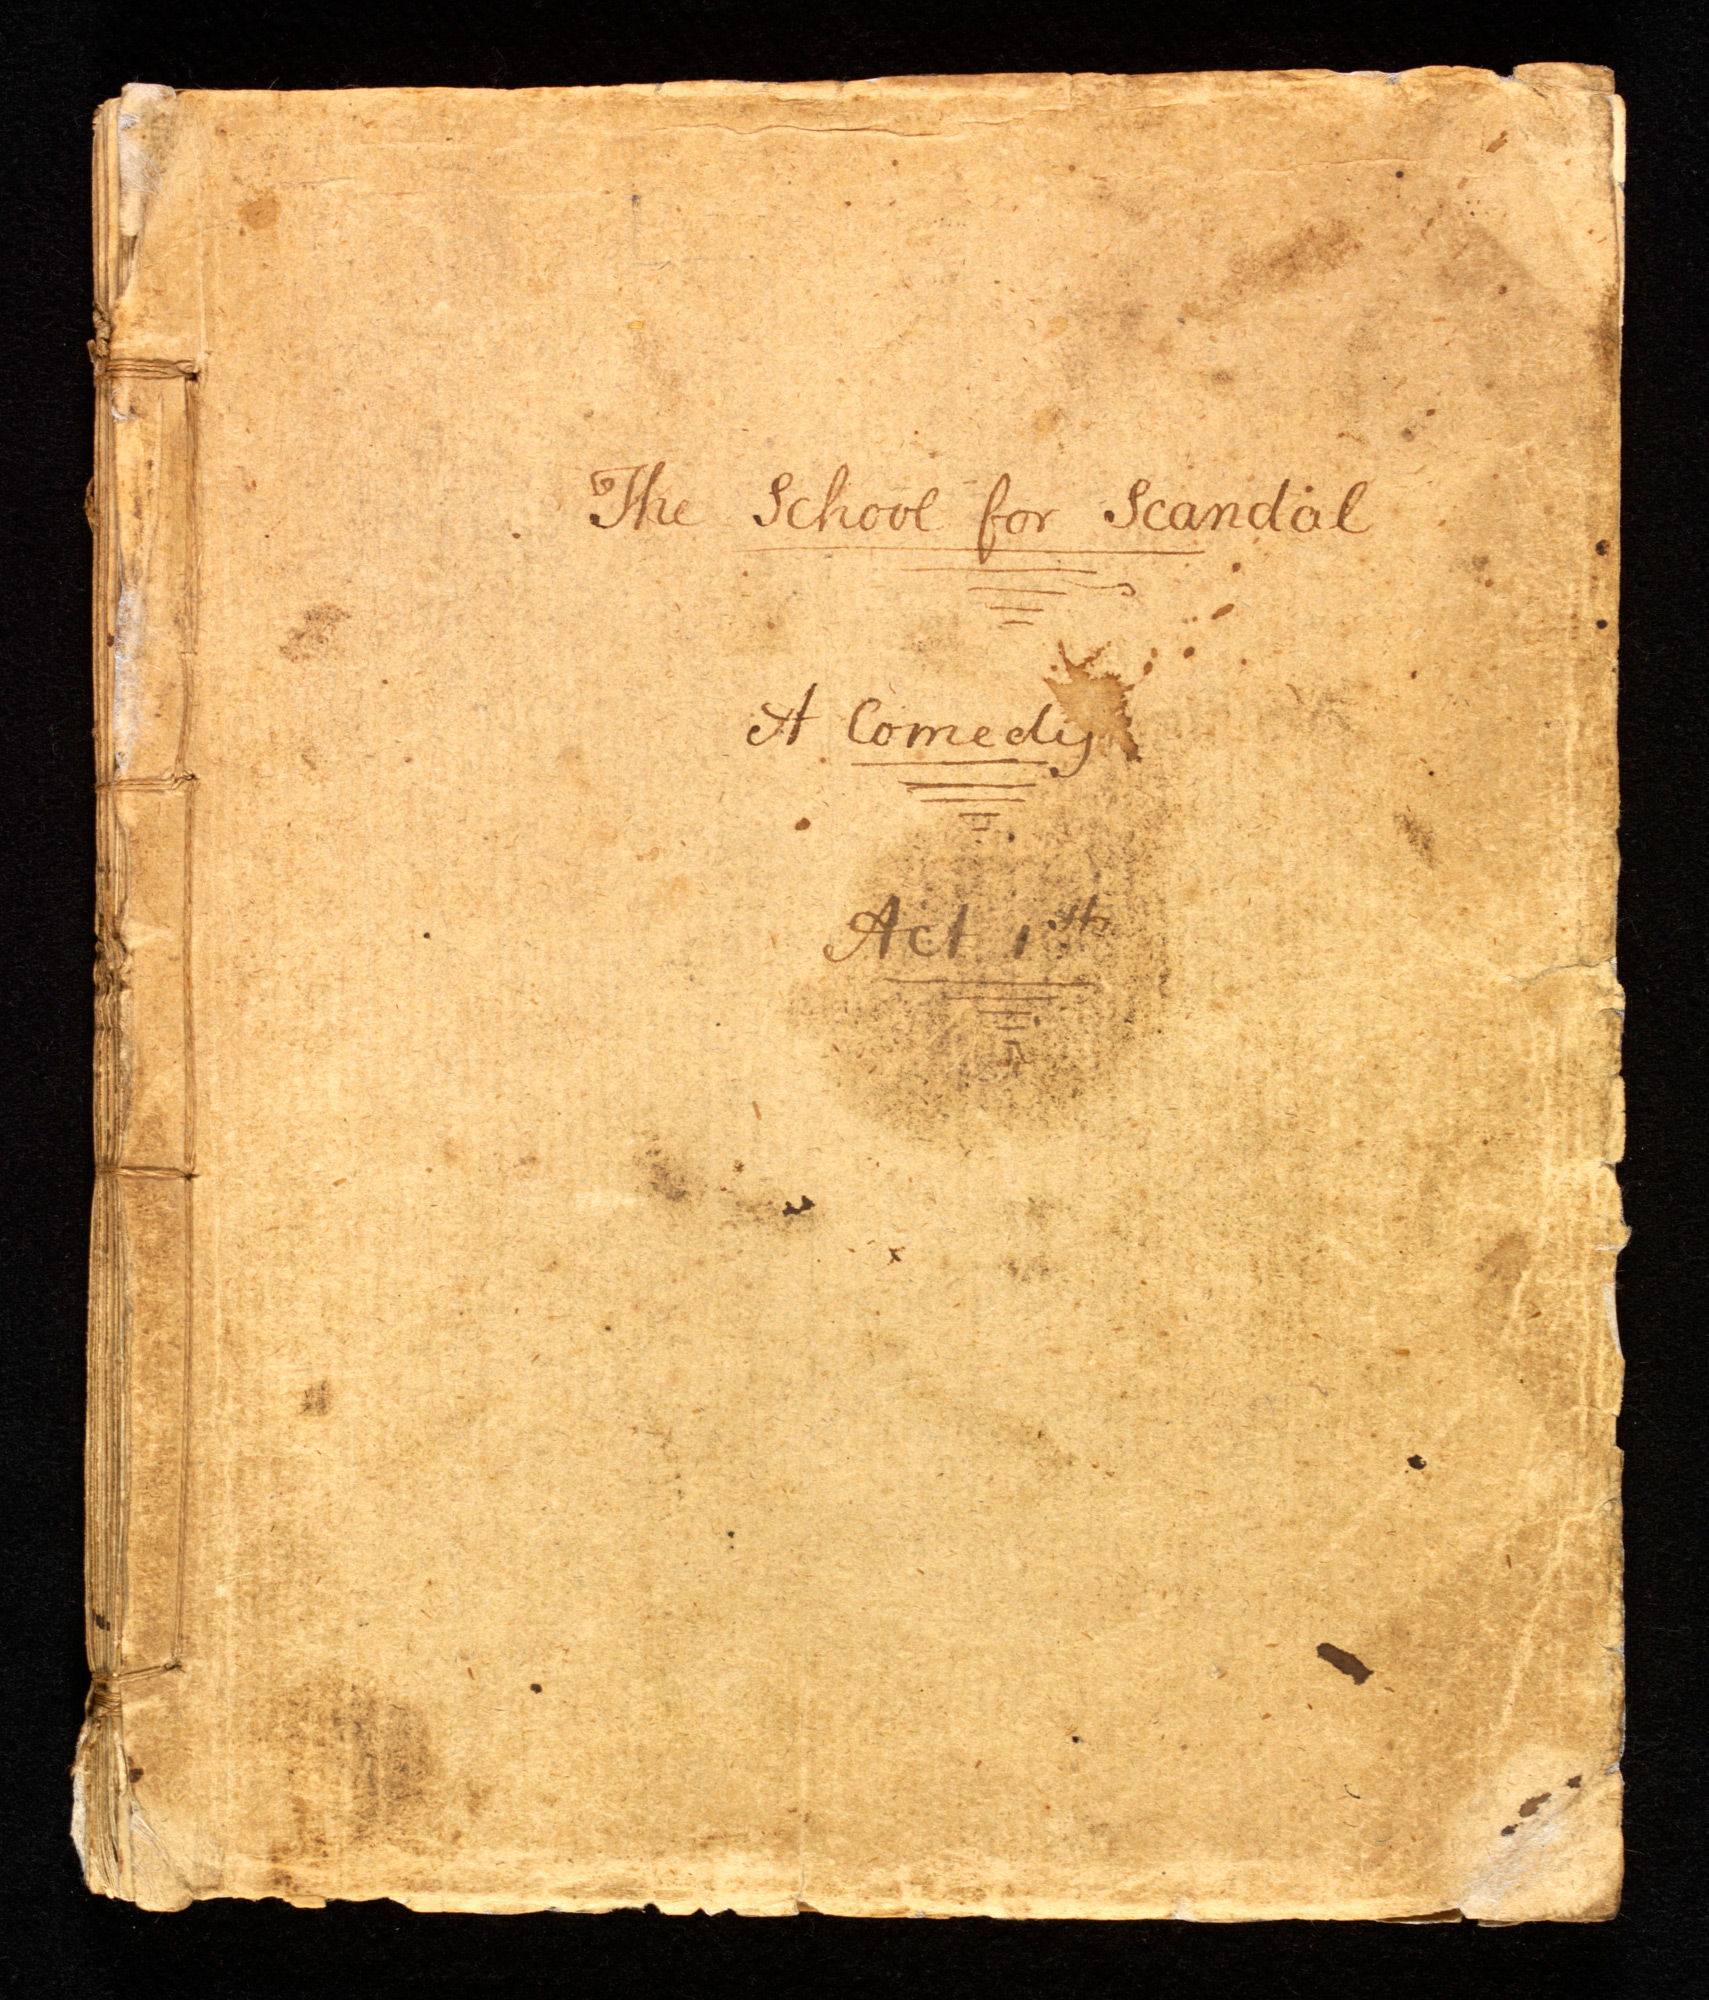 Manuscript of The School for Scandal with revisions by Sheridan